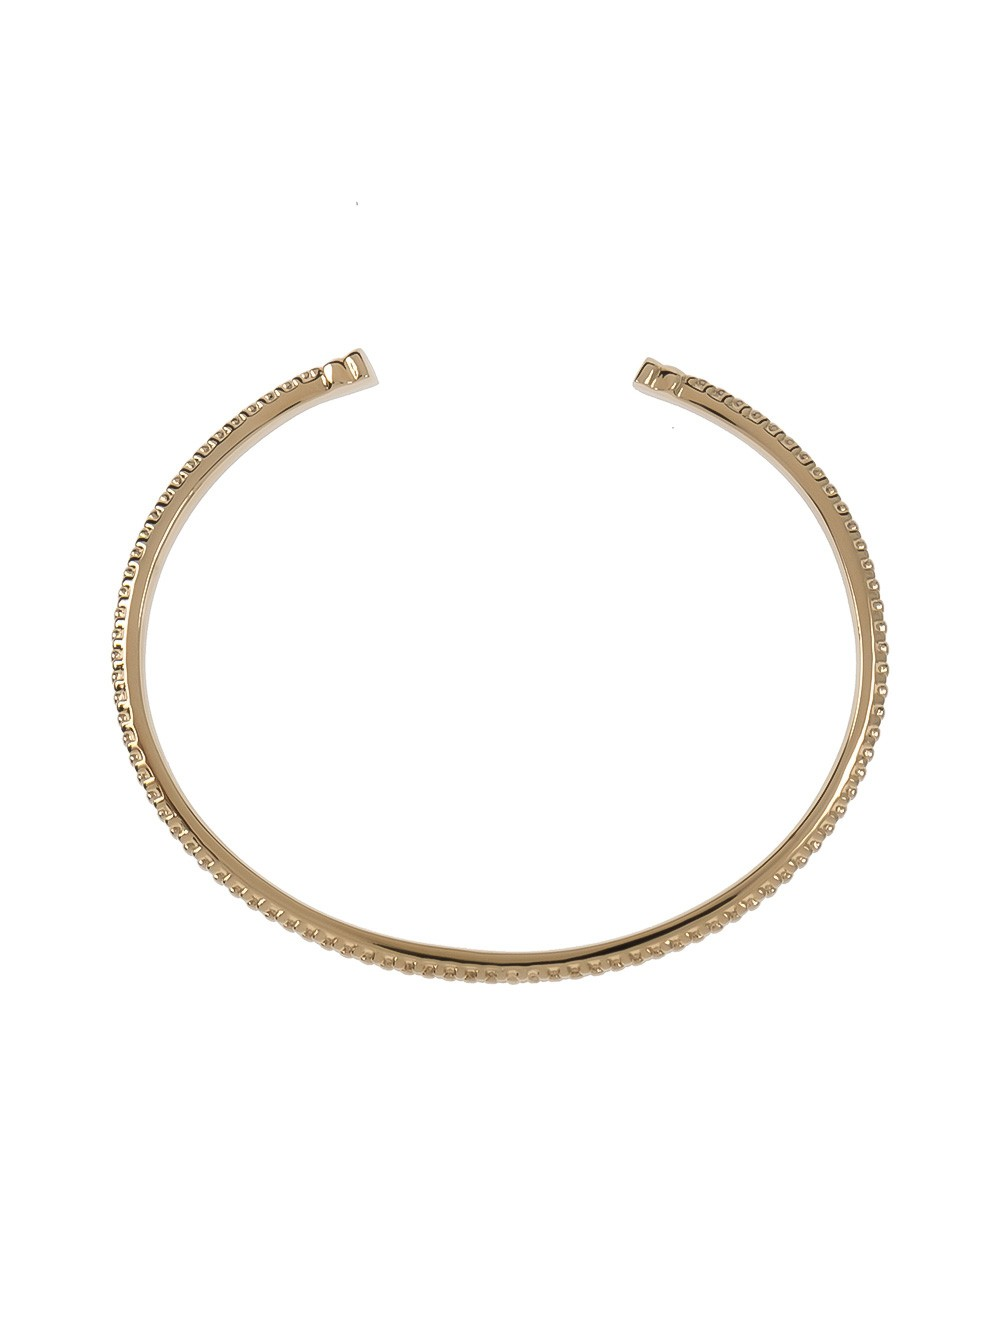 BANGLE CROCO GOLD